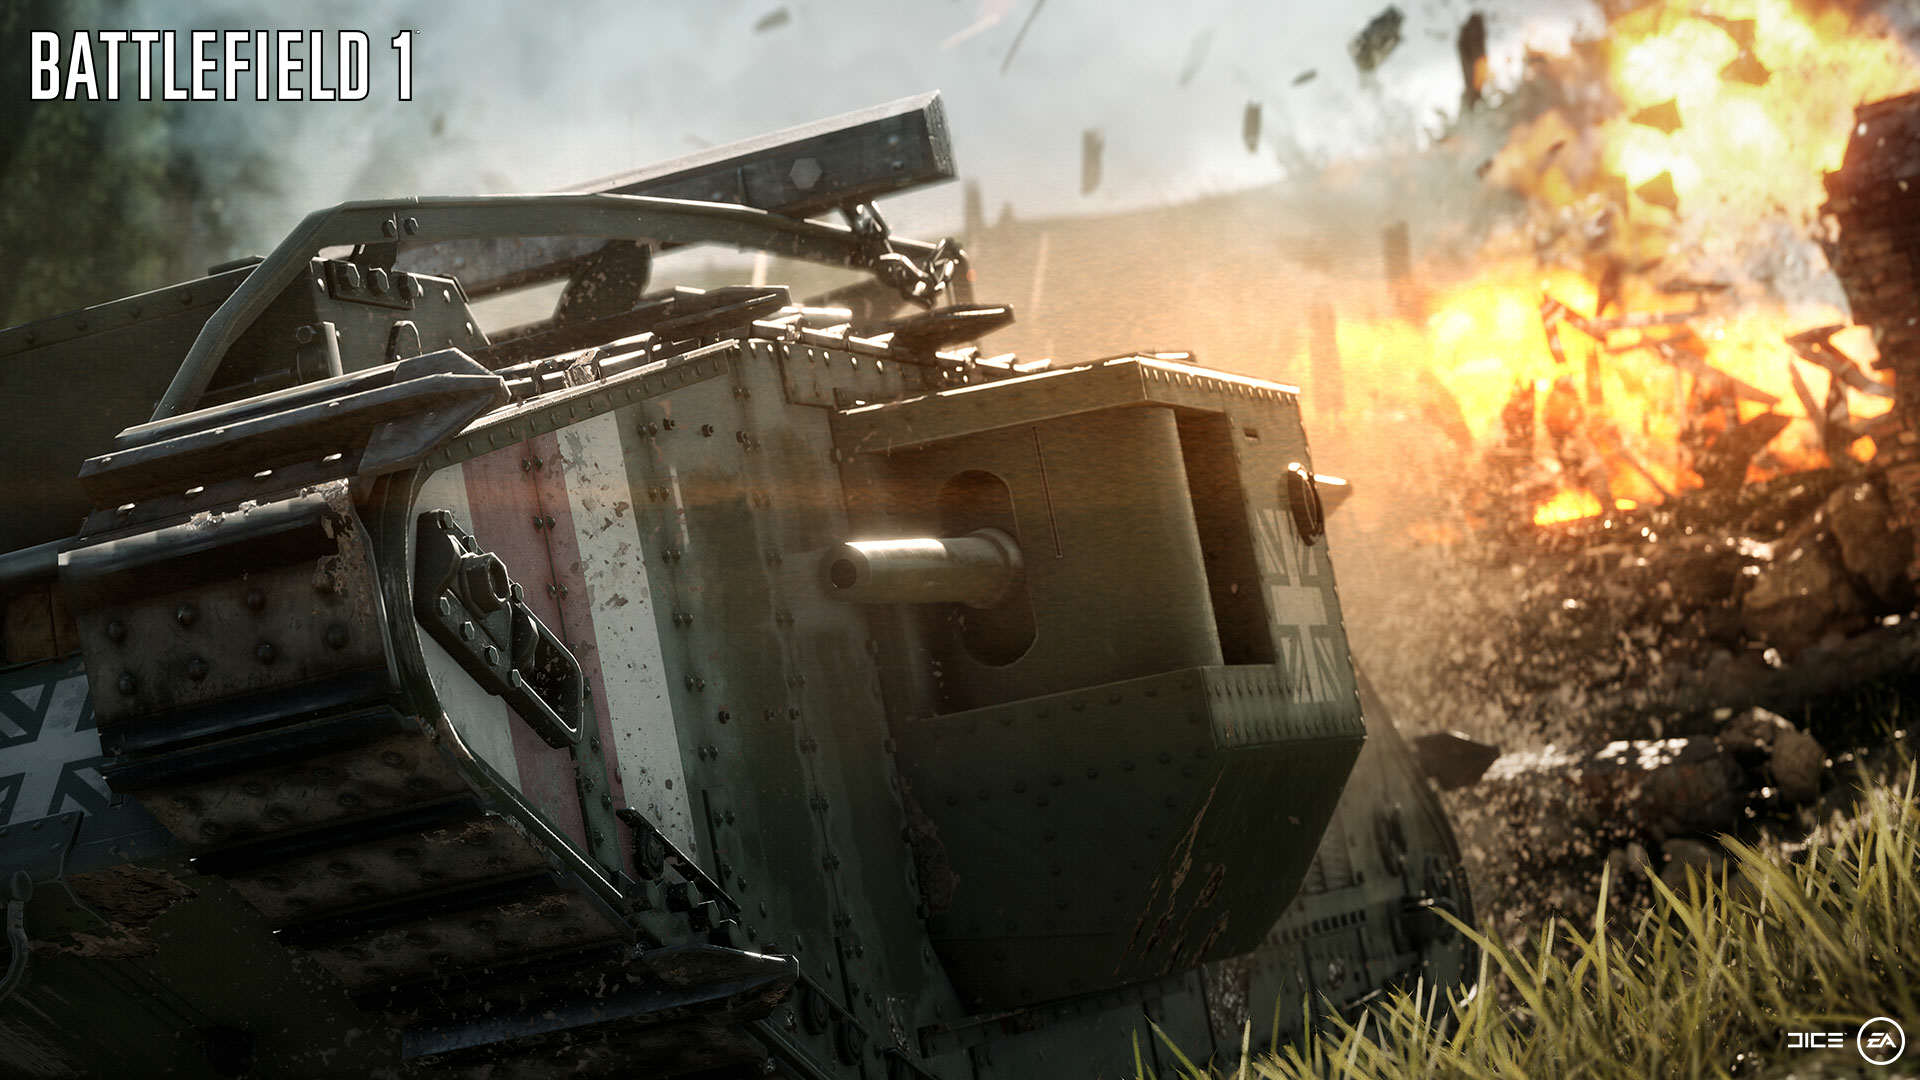 Battlefield 1 Gets Epic New Trailer And Gameplay Features BF1 EA PLAY 02 DESTRUCTION WM